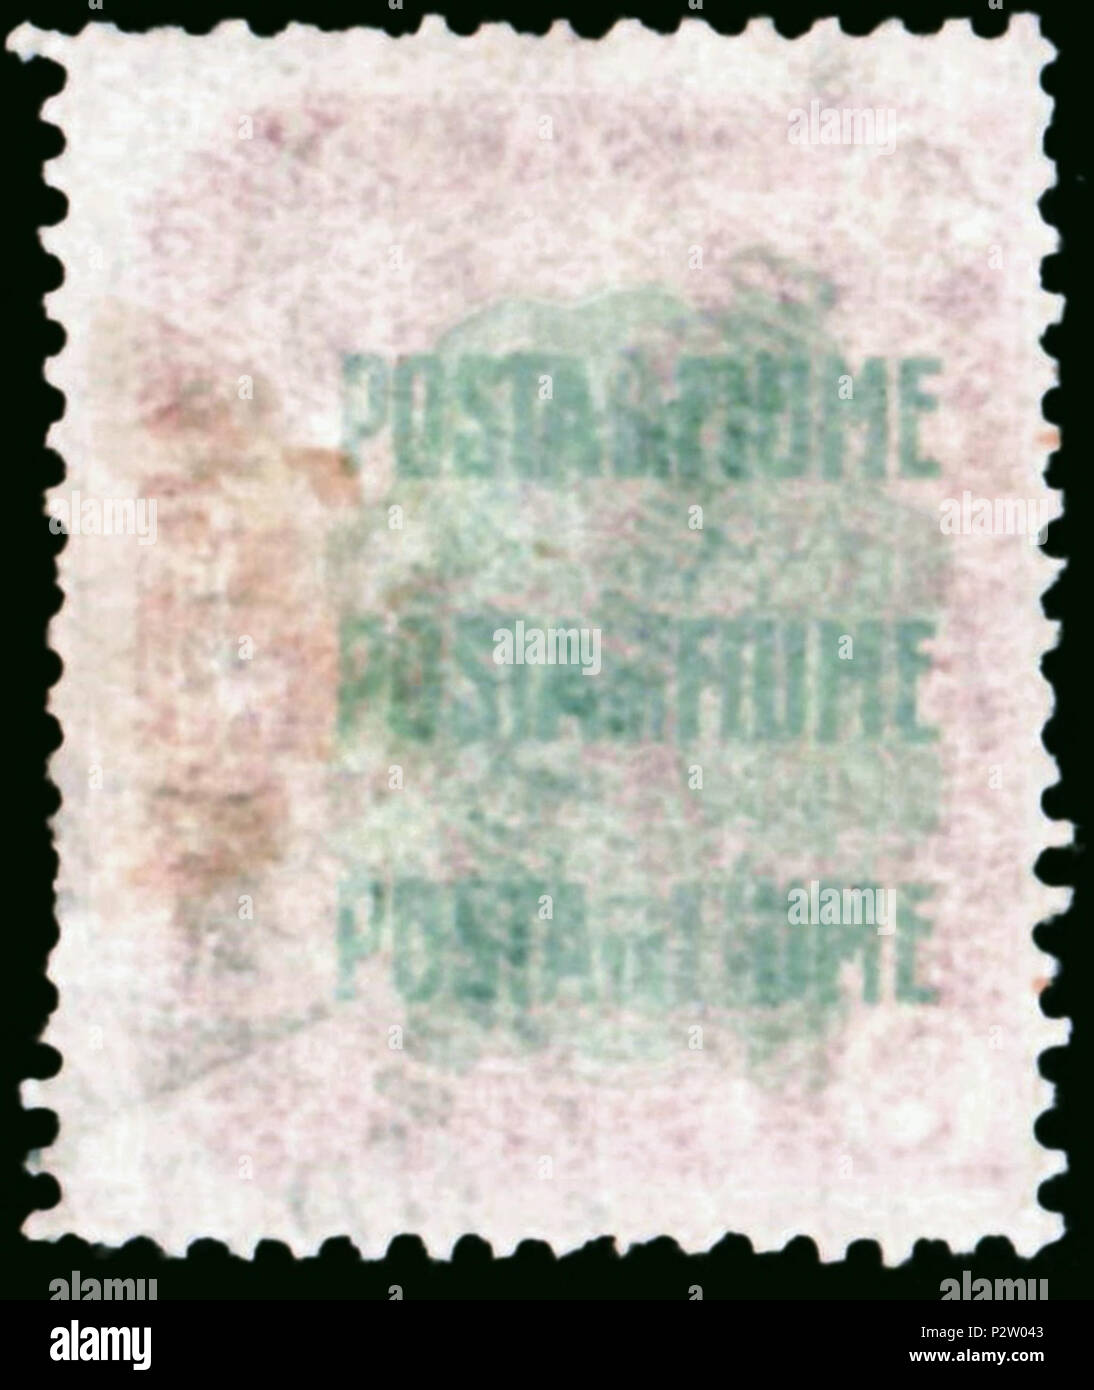 . Backside of a stamp of Fiume; 1922 (original from 1919); visualization of the protective backside print of the 1919 issue '30th October', manufactured by the printery 'Bertieri & Vanzetti, Milano'; print in very dull bluegreen with threefold inscription 'POSTA di FIUME' (one below the other) on very dull decorative pattern of an underpress of the same color. This protective print exist only in the original issue (Michel No. 50 - 61), printed by Bertieri & Vanzetti. It's lacking at reprints, but present at the stamps used for later overprint variants. 12 April 1922, overprint on front side on - Stock Image